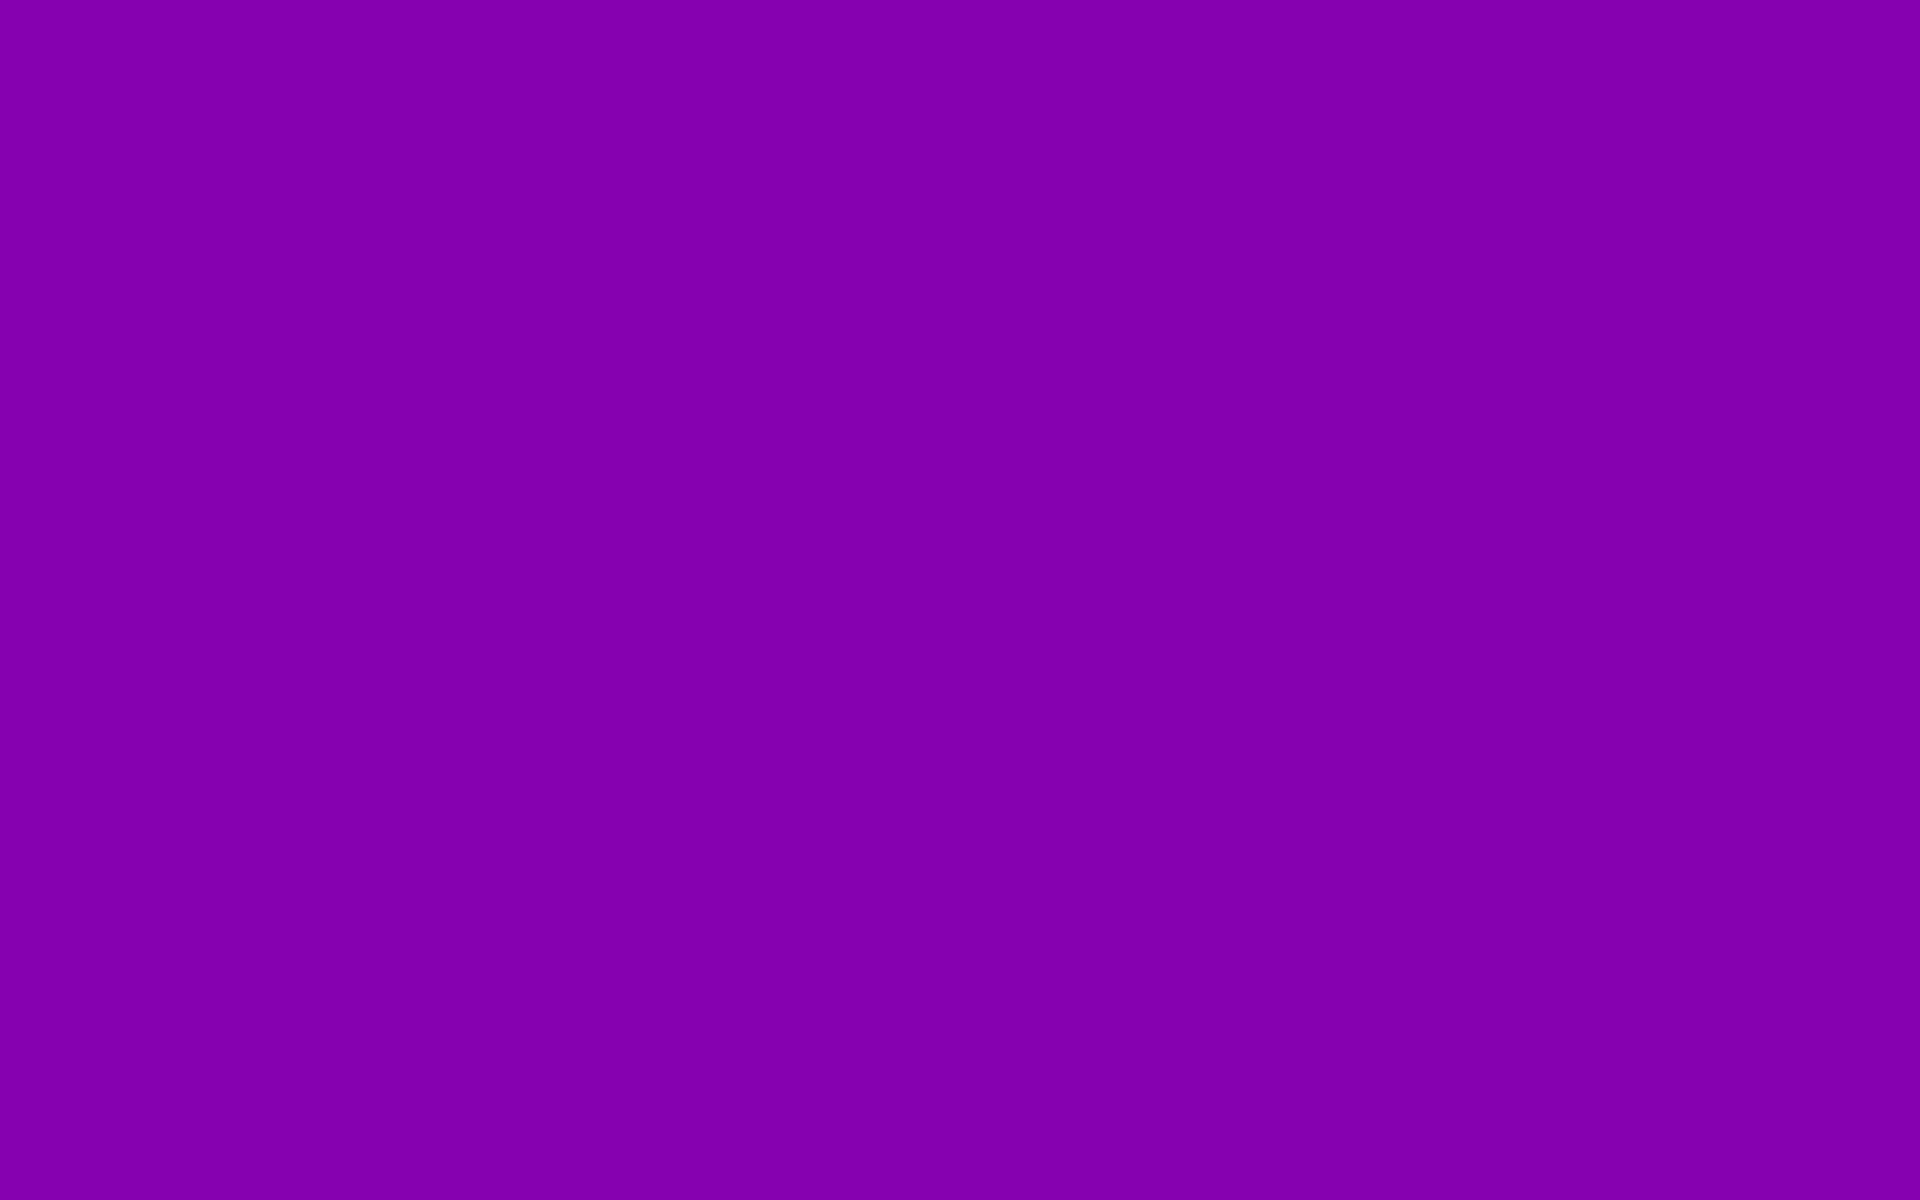 1920x1200 Violet RYB Solid Color Background